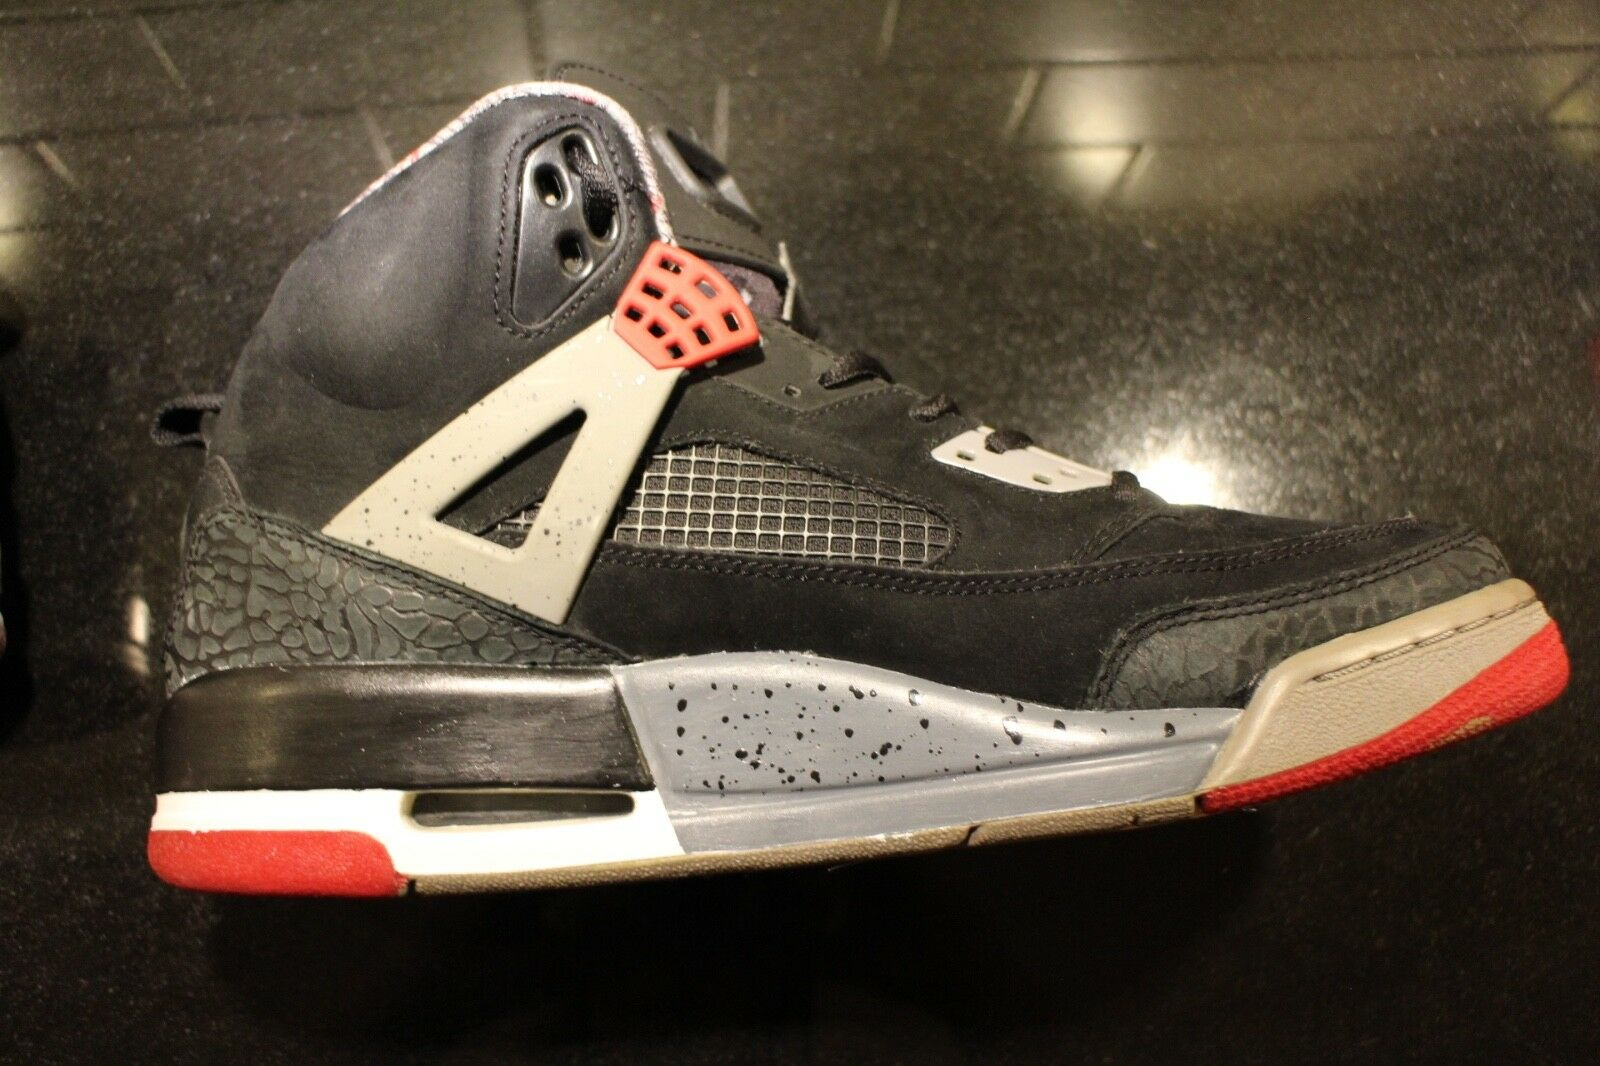 buy online cf382 6e5df Nike Nike Nike Air Jordan Spiz ike Black Red-Cement Grey-Military